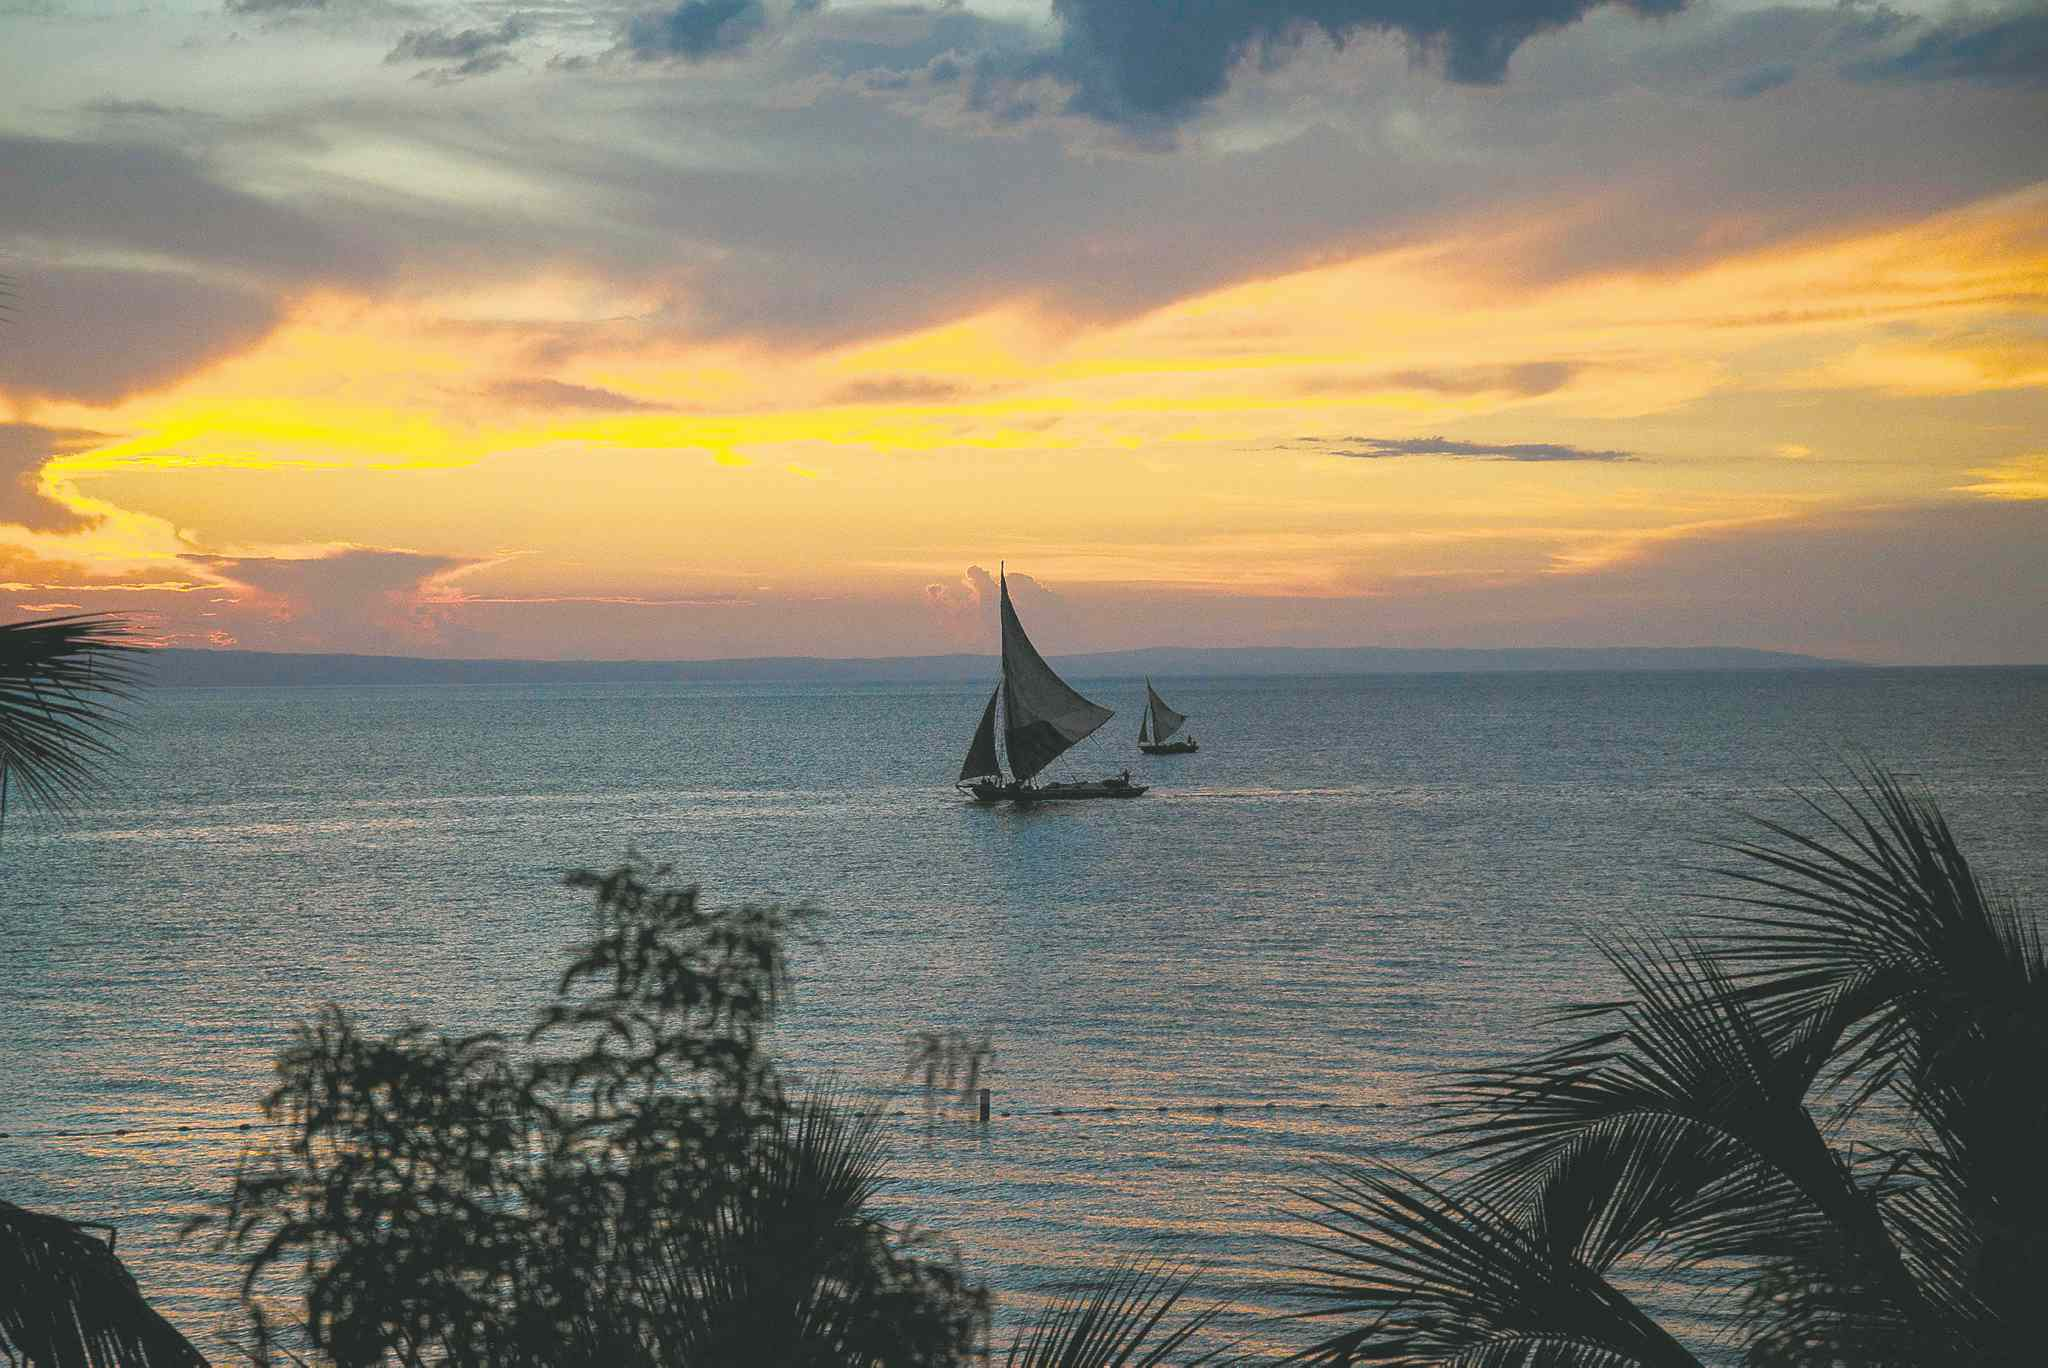 The Cote des Arcadins, a 45-minute drive from the Haitian capital of Port-au-Prince, boasts endless turquoise sea and 50 kilometres of the most beautiful white sand beaches in the Caribbean.